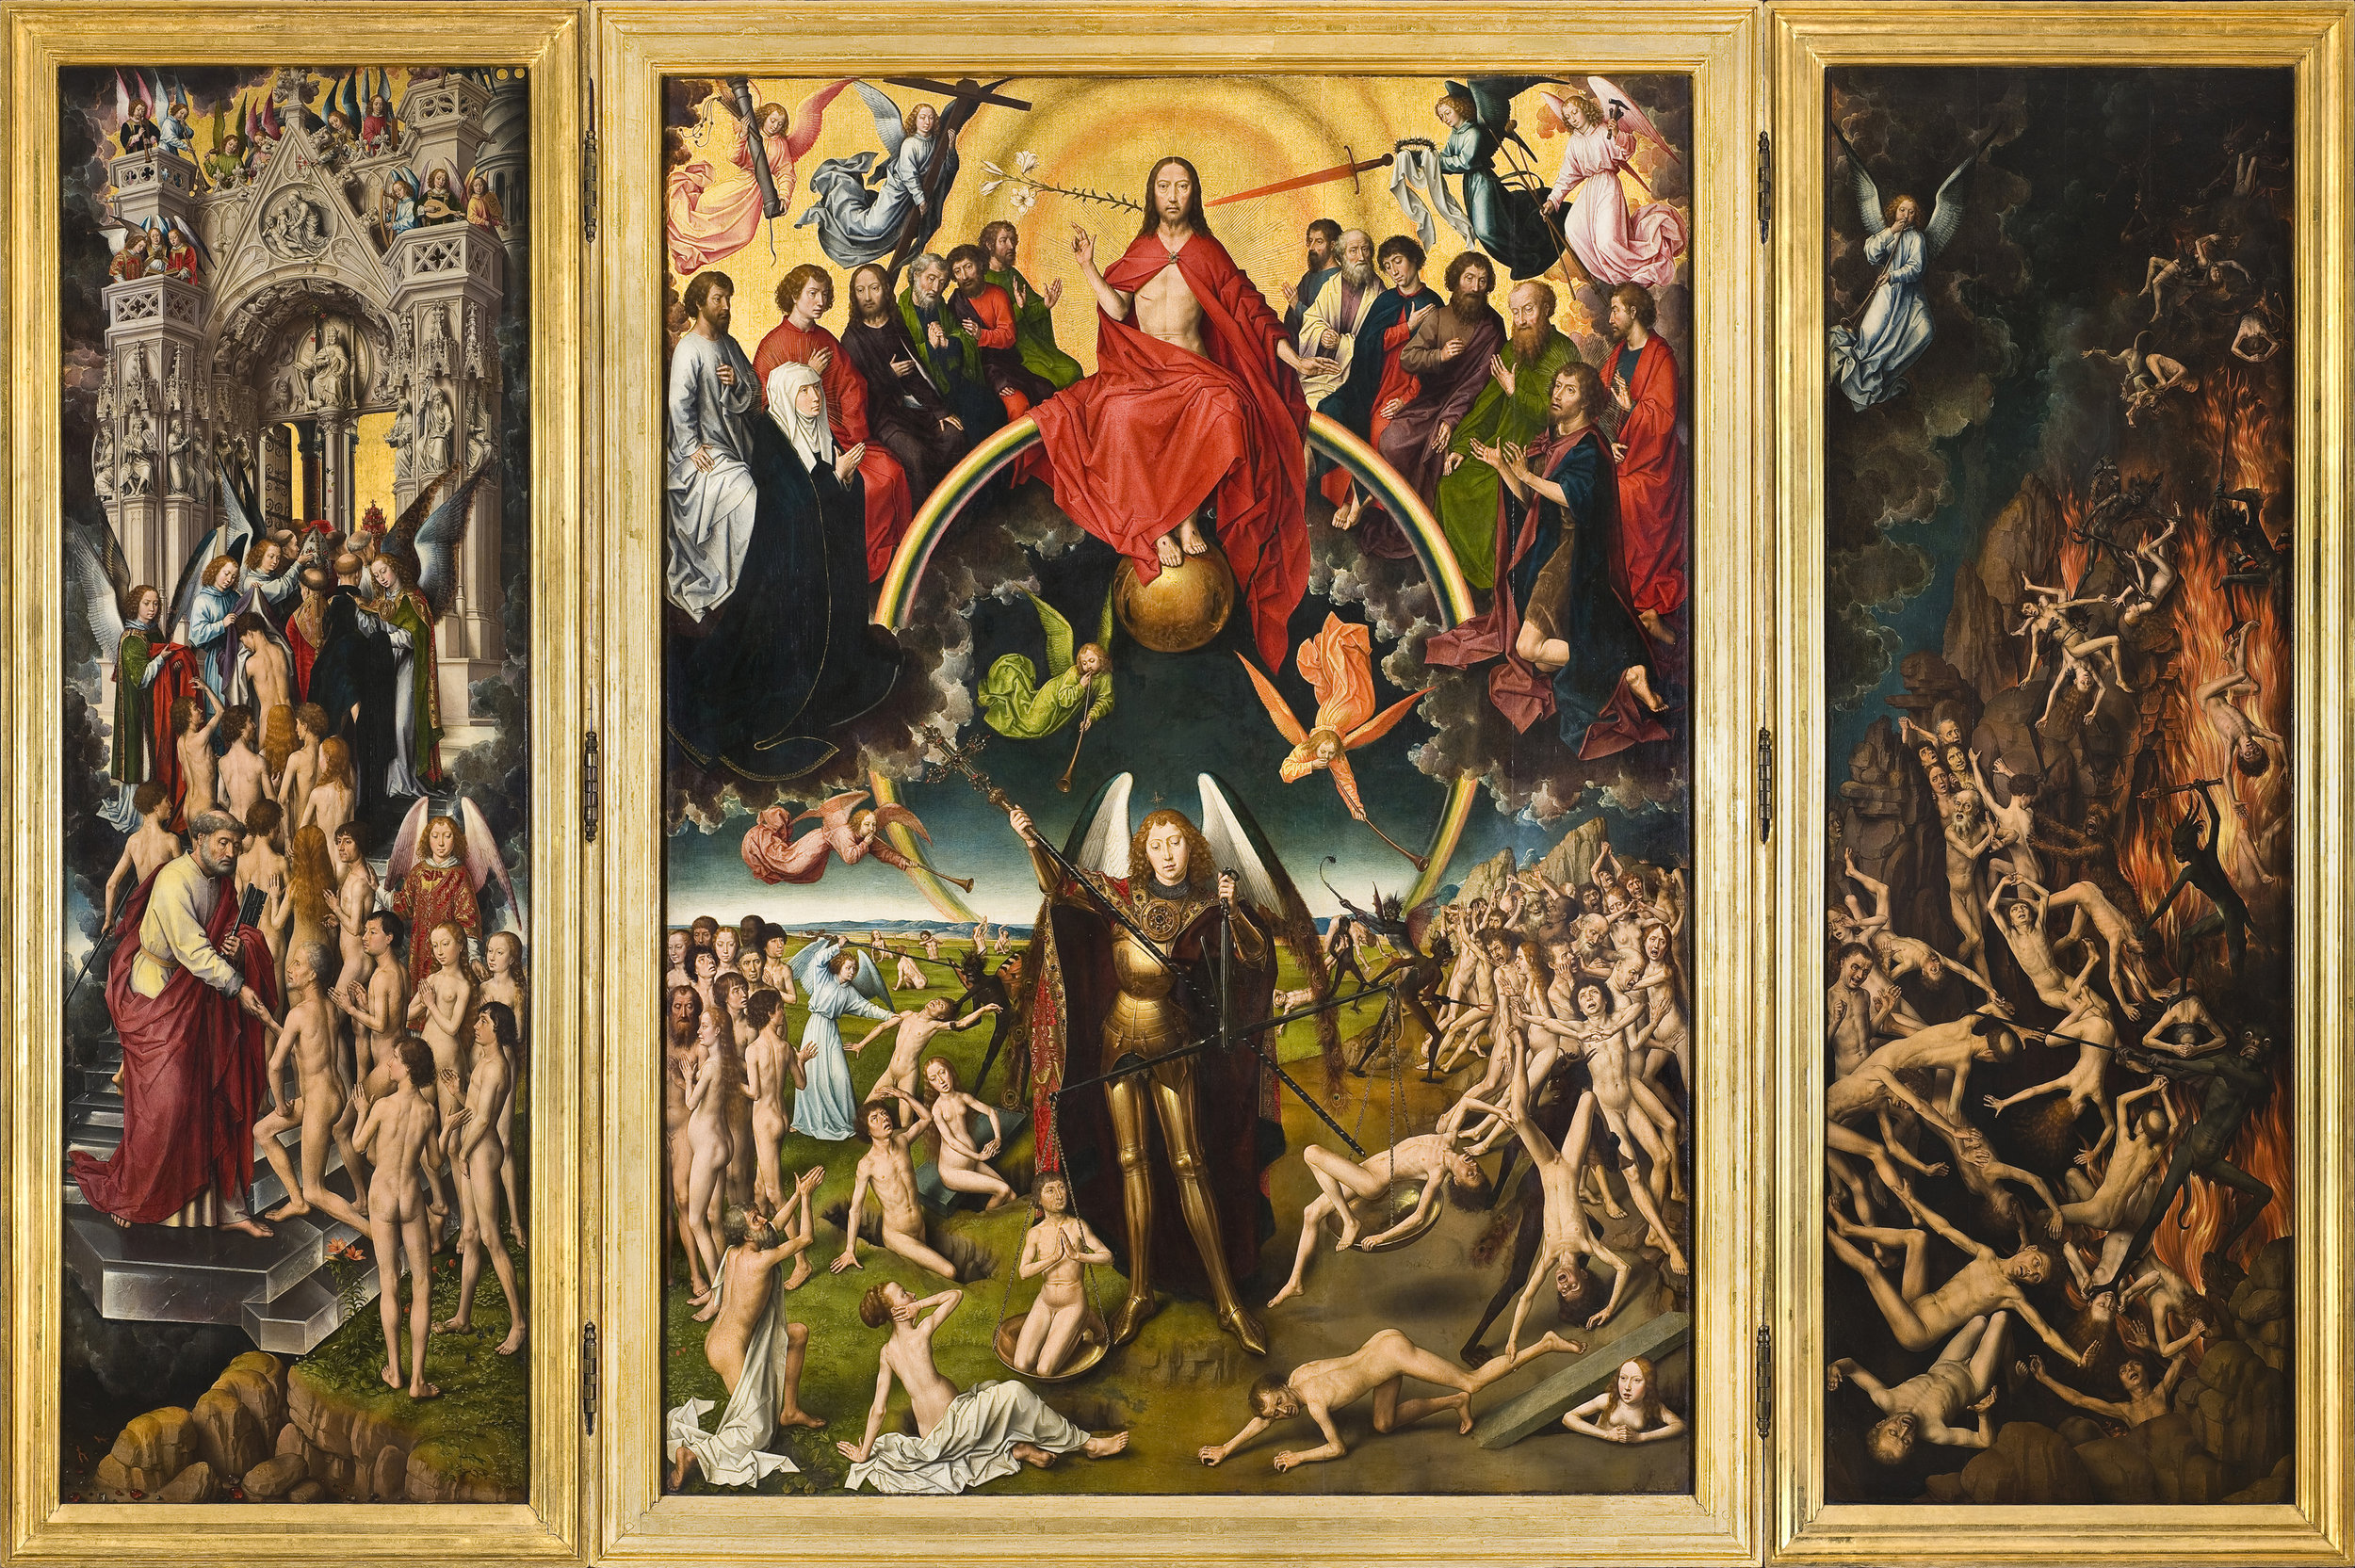 The Four Last Things: Death, Judgment, Heaven, and Hell  By Hans Memling - http://mng.gda.pl/zbiory/sztuka-dawna/hans-memling/, Public Domain, https://commons.wikimedia.org/w/index.php?curid=1455943